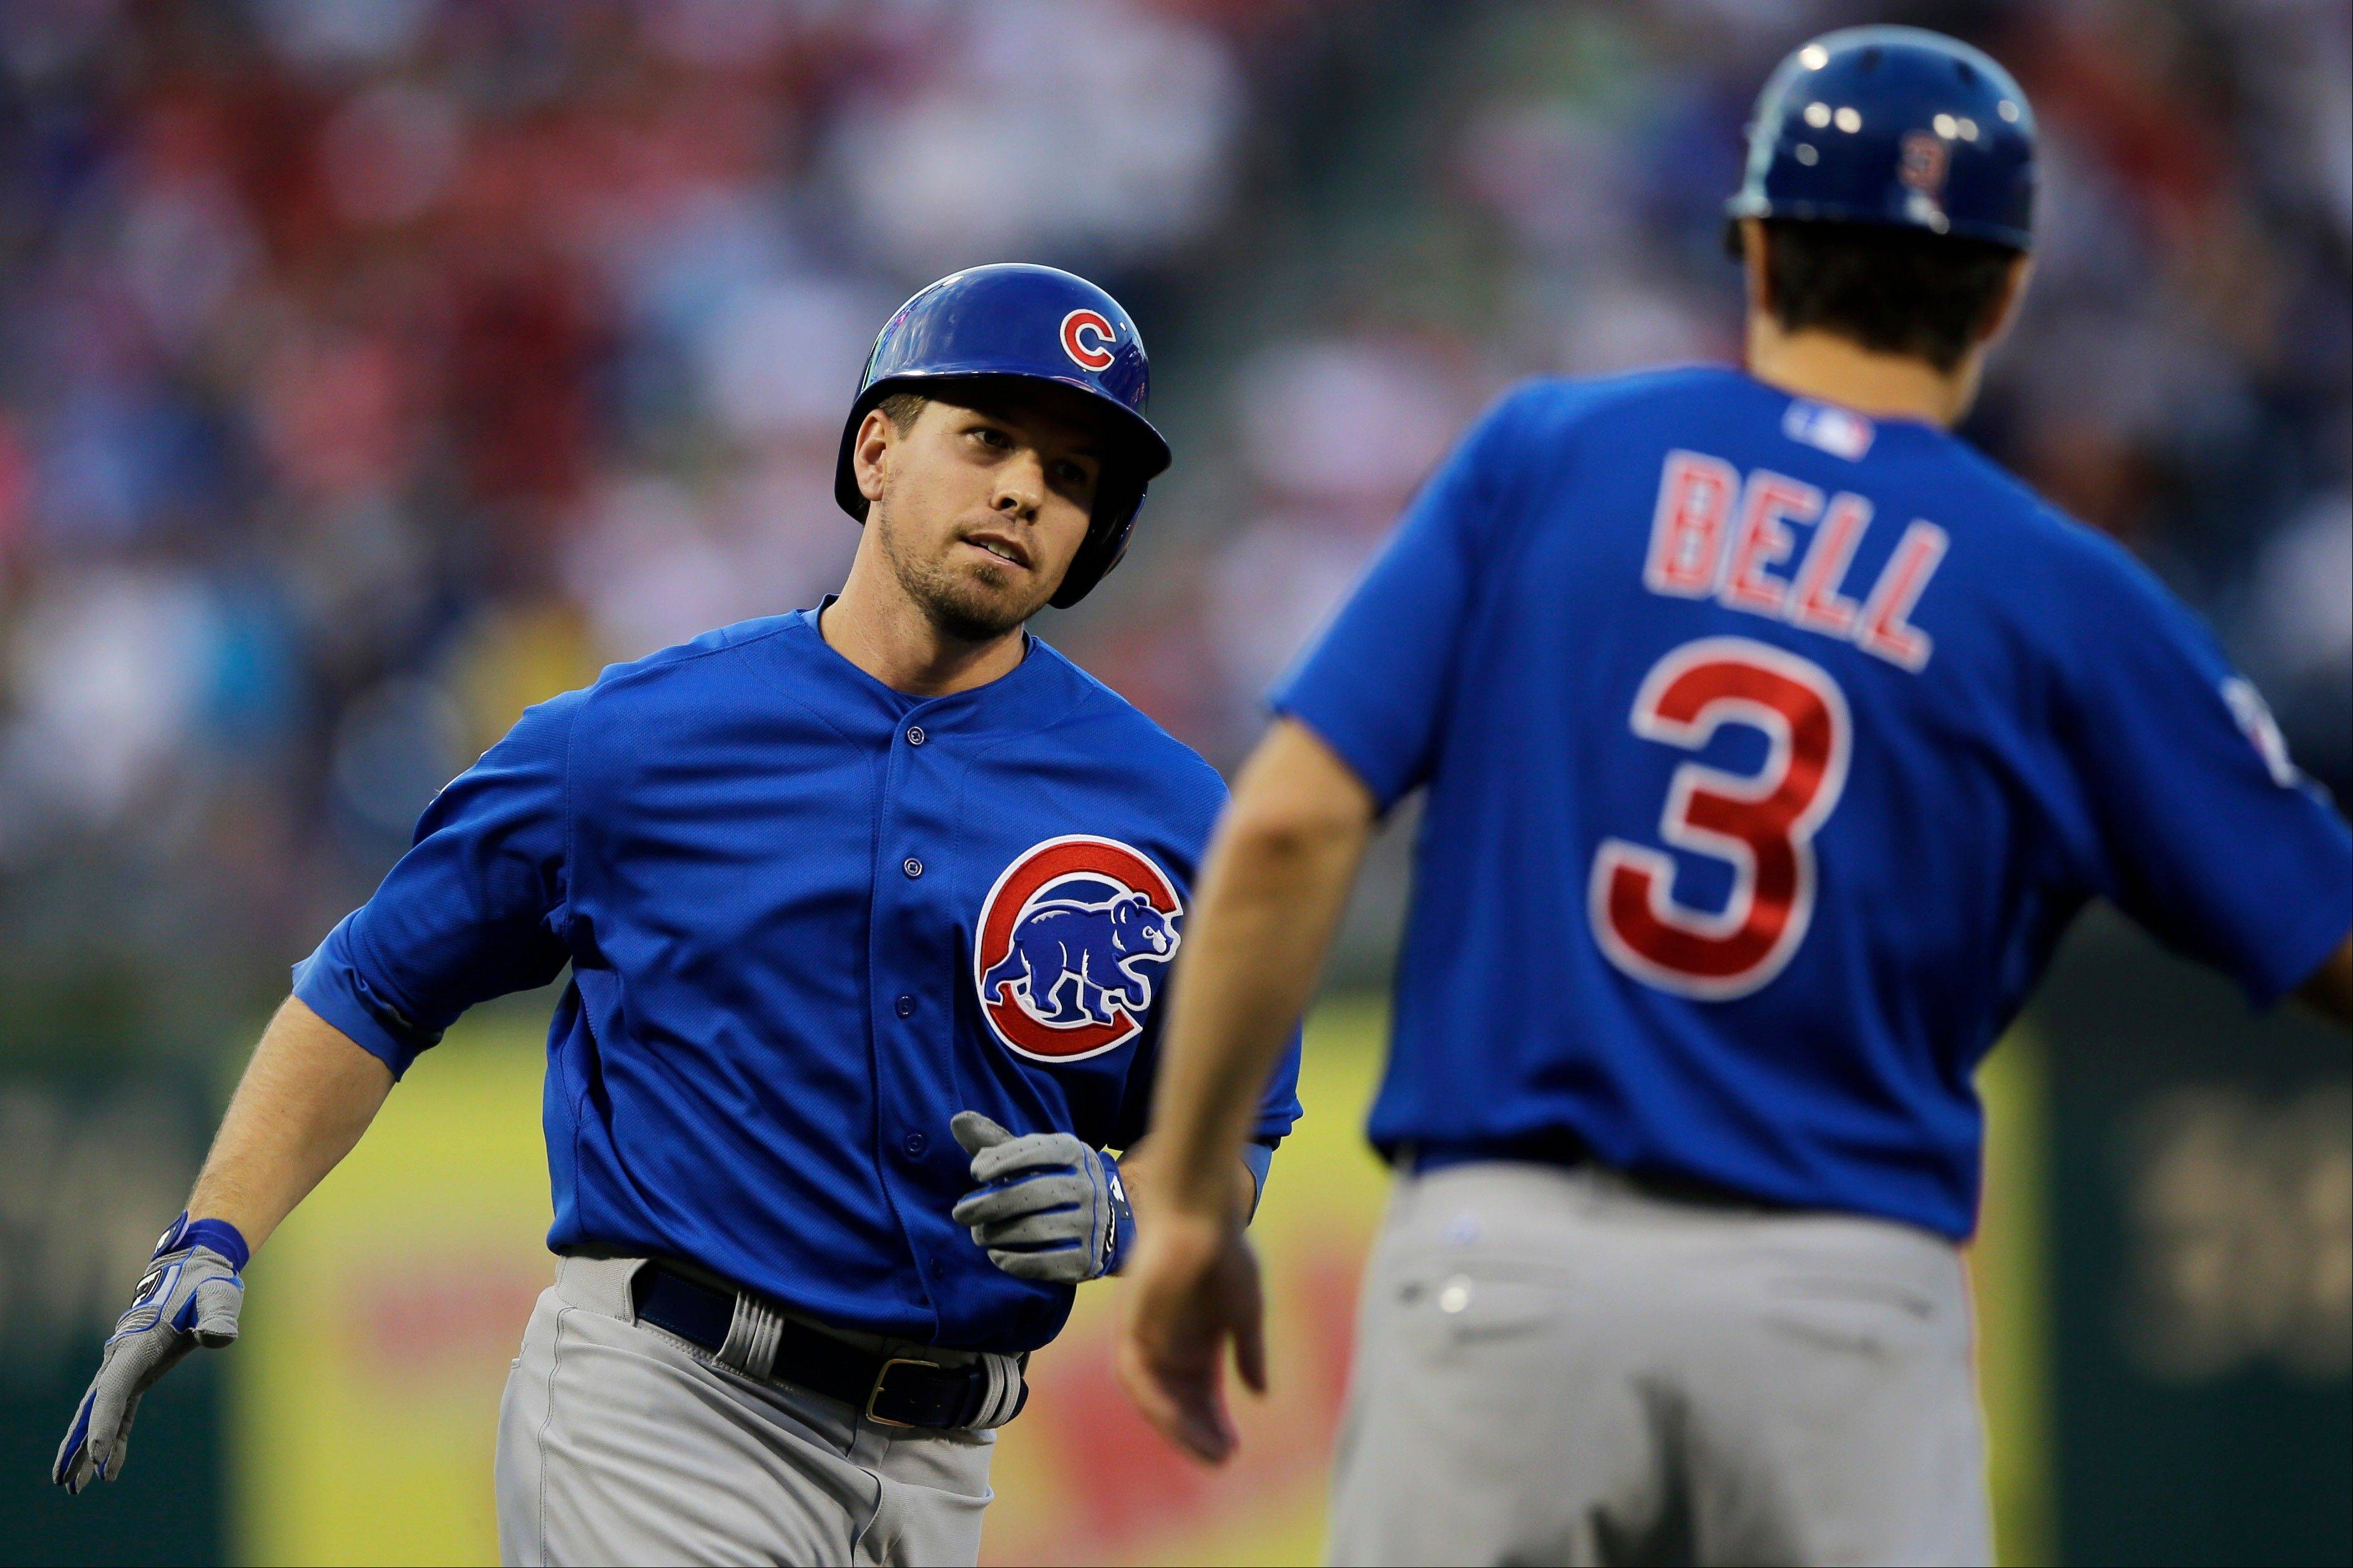 Chicago Cubs' Donnie Murphy, left, celebrates with third base coach David Bell as he rounds the bases after hitting a three-run home run off Philadelphia Phillies starting pitcher Kyle Kendrick in the second inning of a baseball game, Tuesday, Aug. 6, 2013, in Philadelphia. (AP Photo/Matt Slocum)